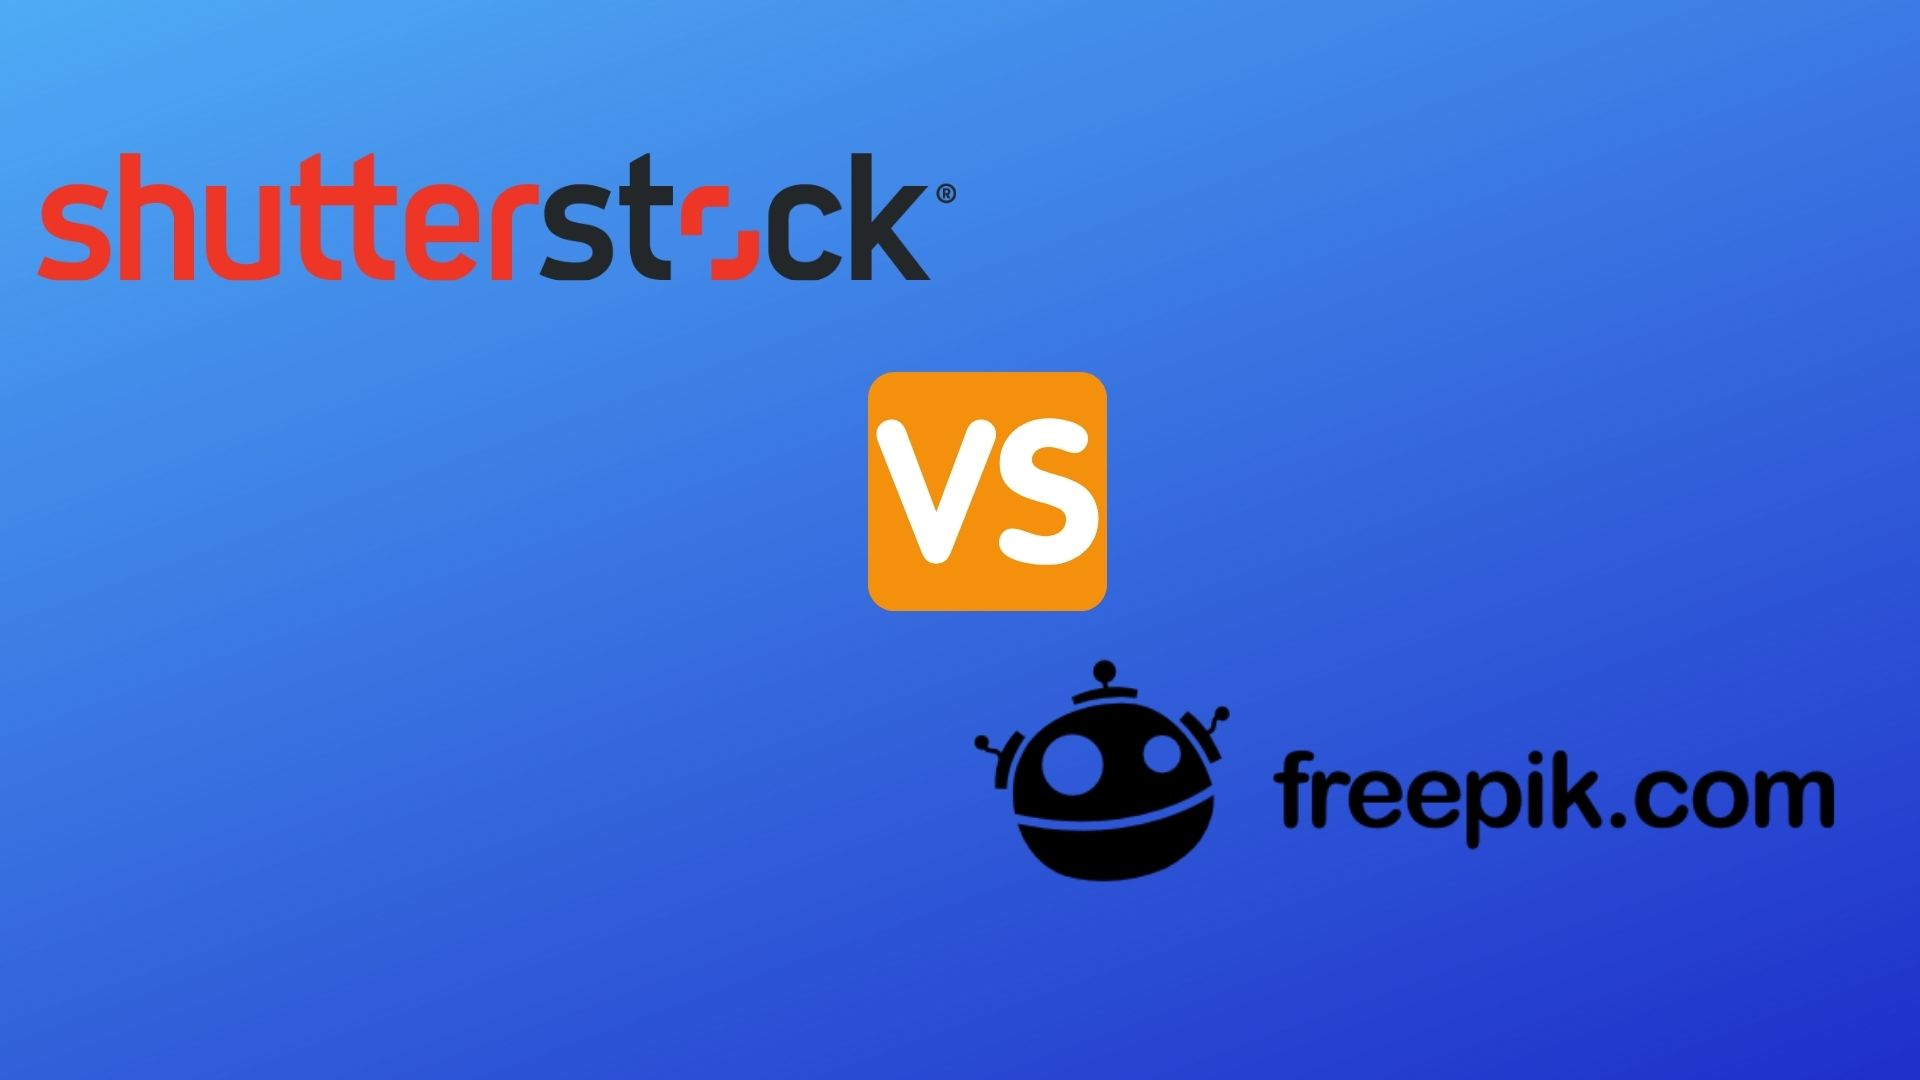 Shutterstock vs Freepik: Which one to choose